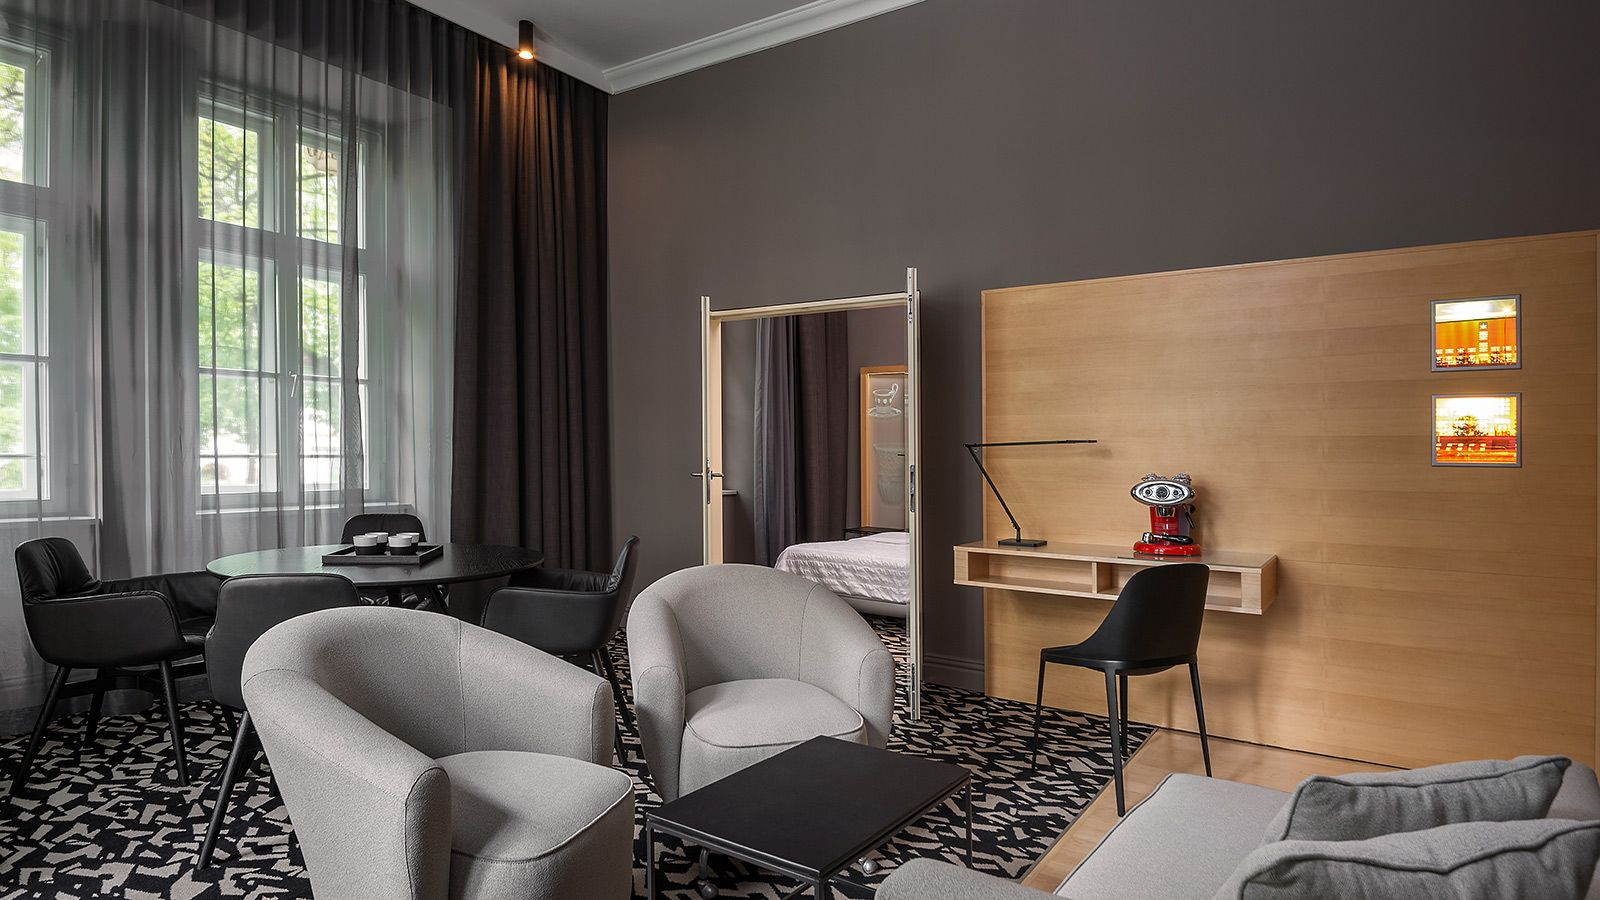 Luxury Hotel Vienna: Le Méridien - Executive Suite